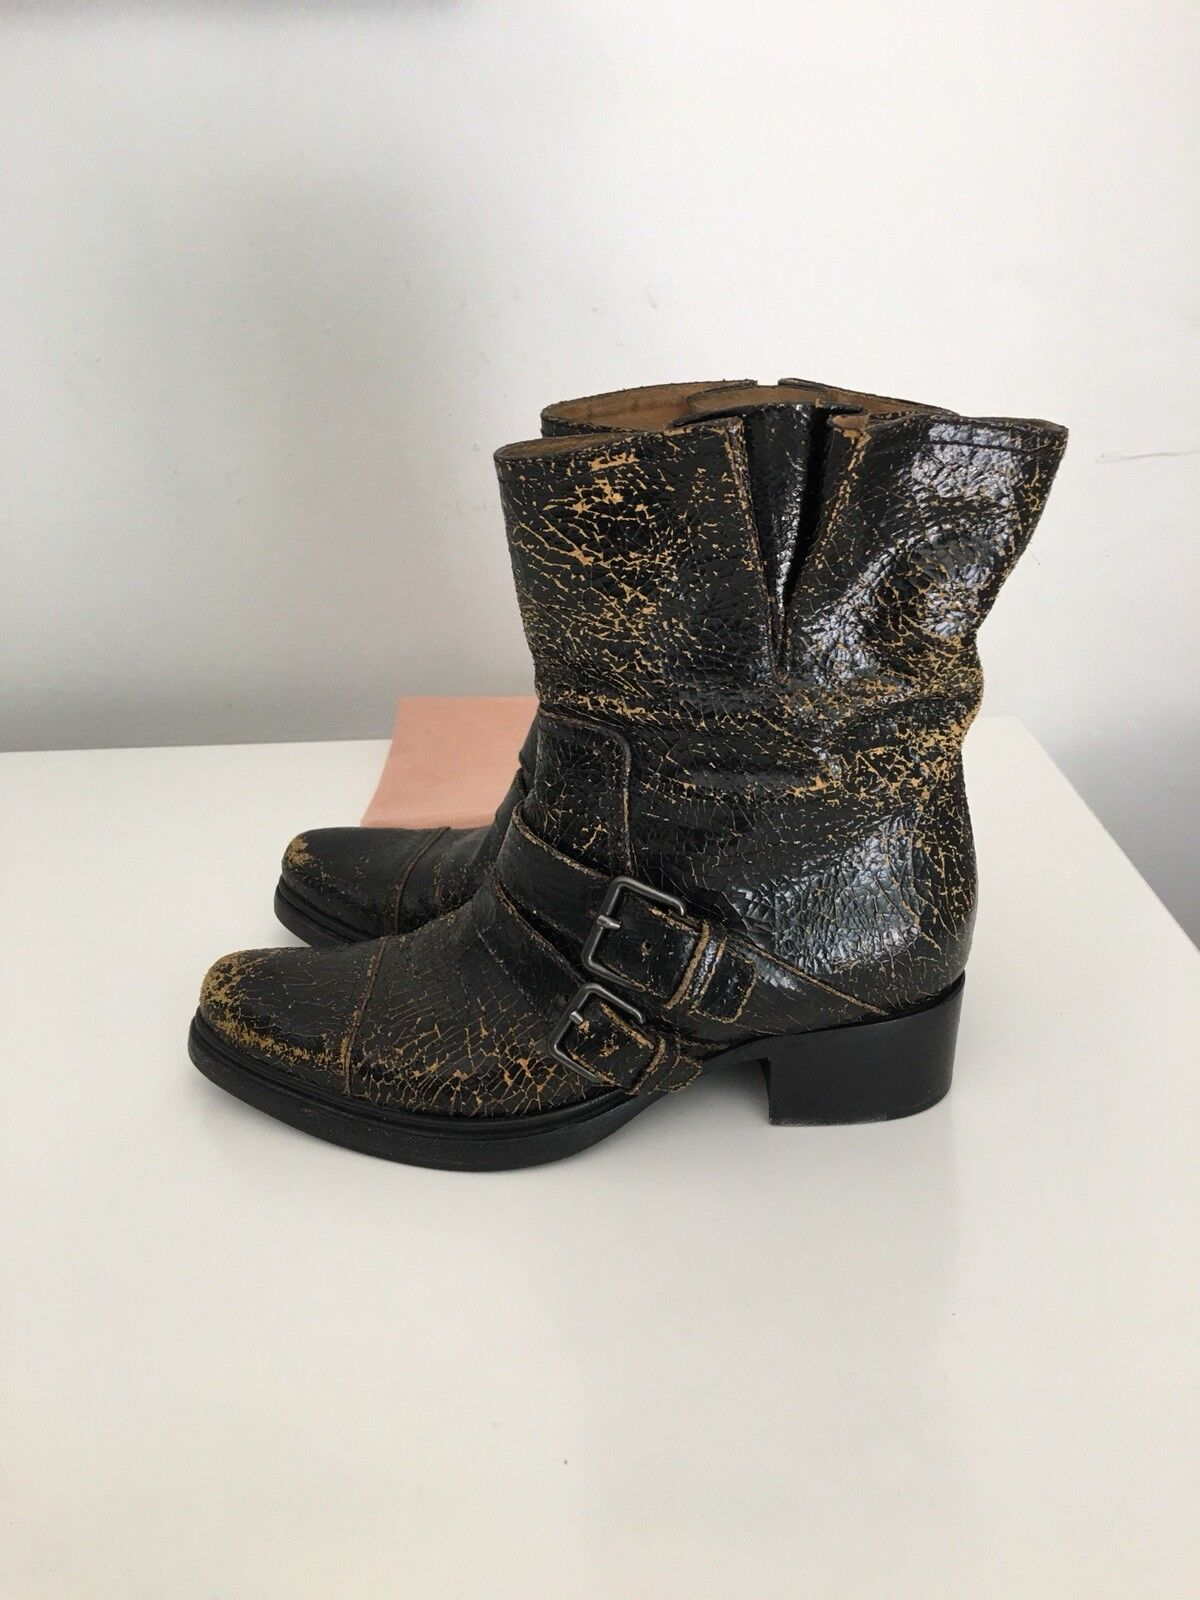 850 MIU MIU PRADA BEAUTY CRACKLED BLACK LEATHER BUCKLED BOOTS SIZE 38 ITALY